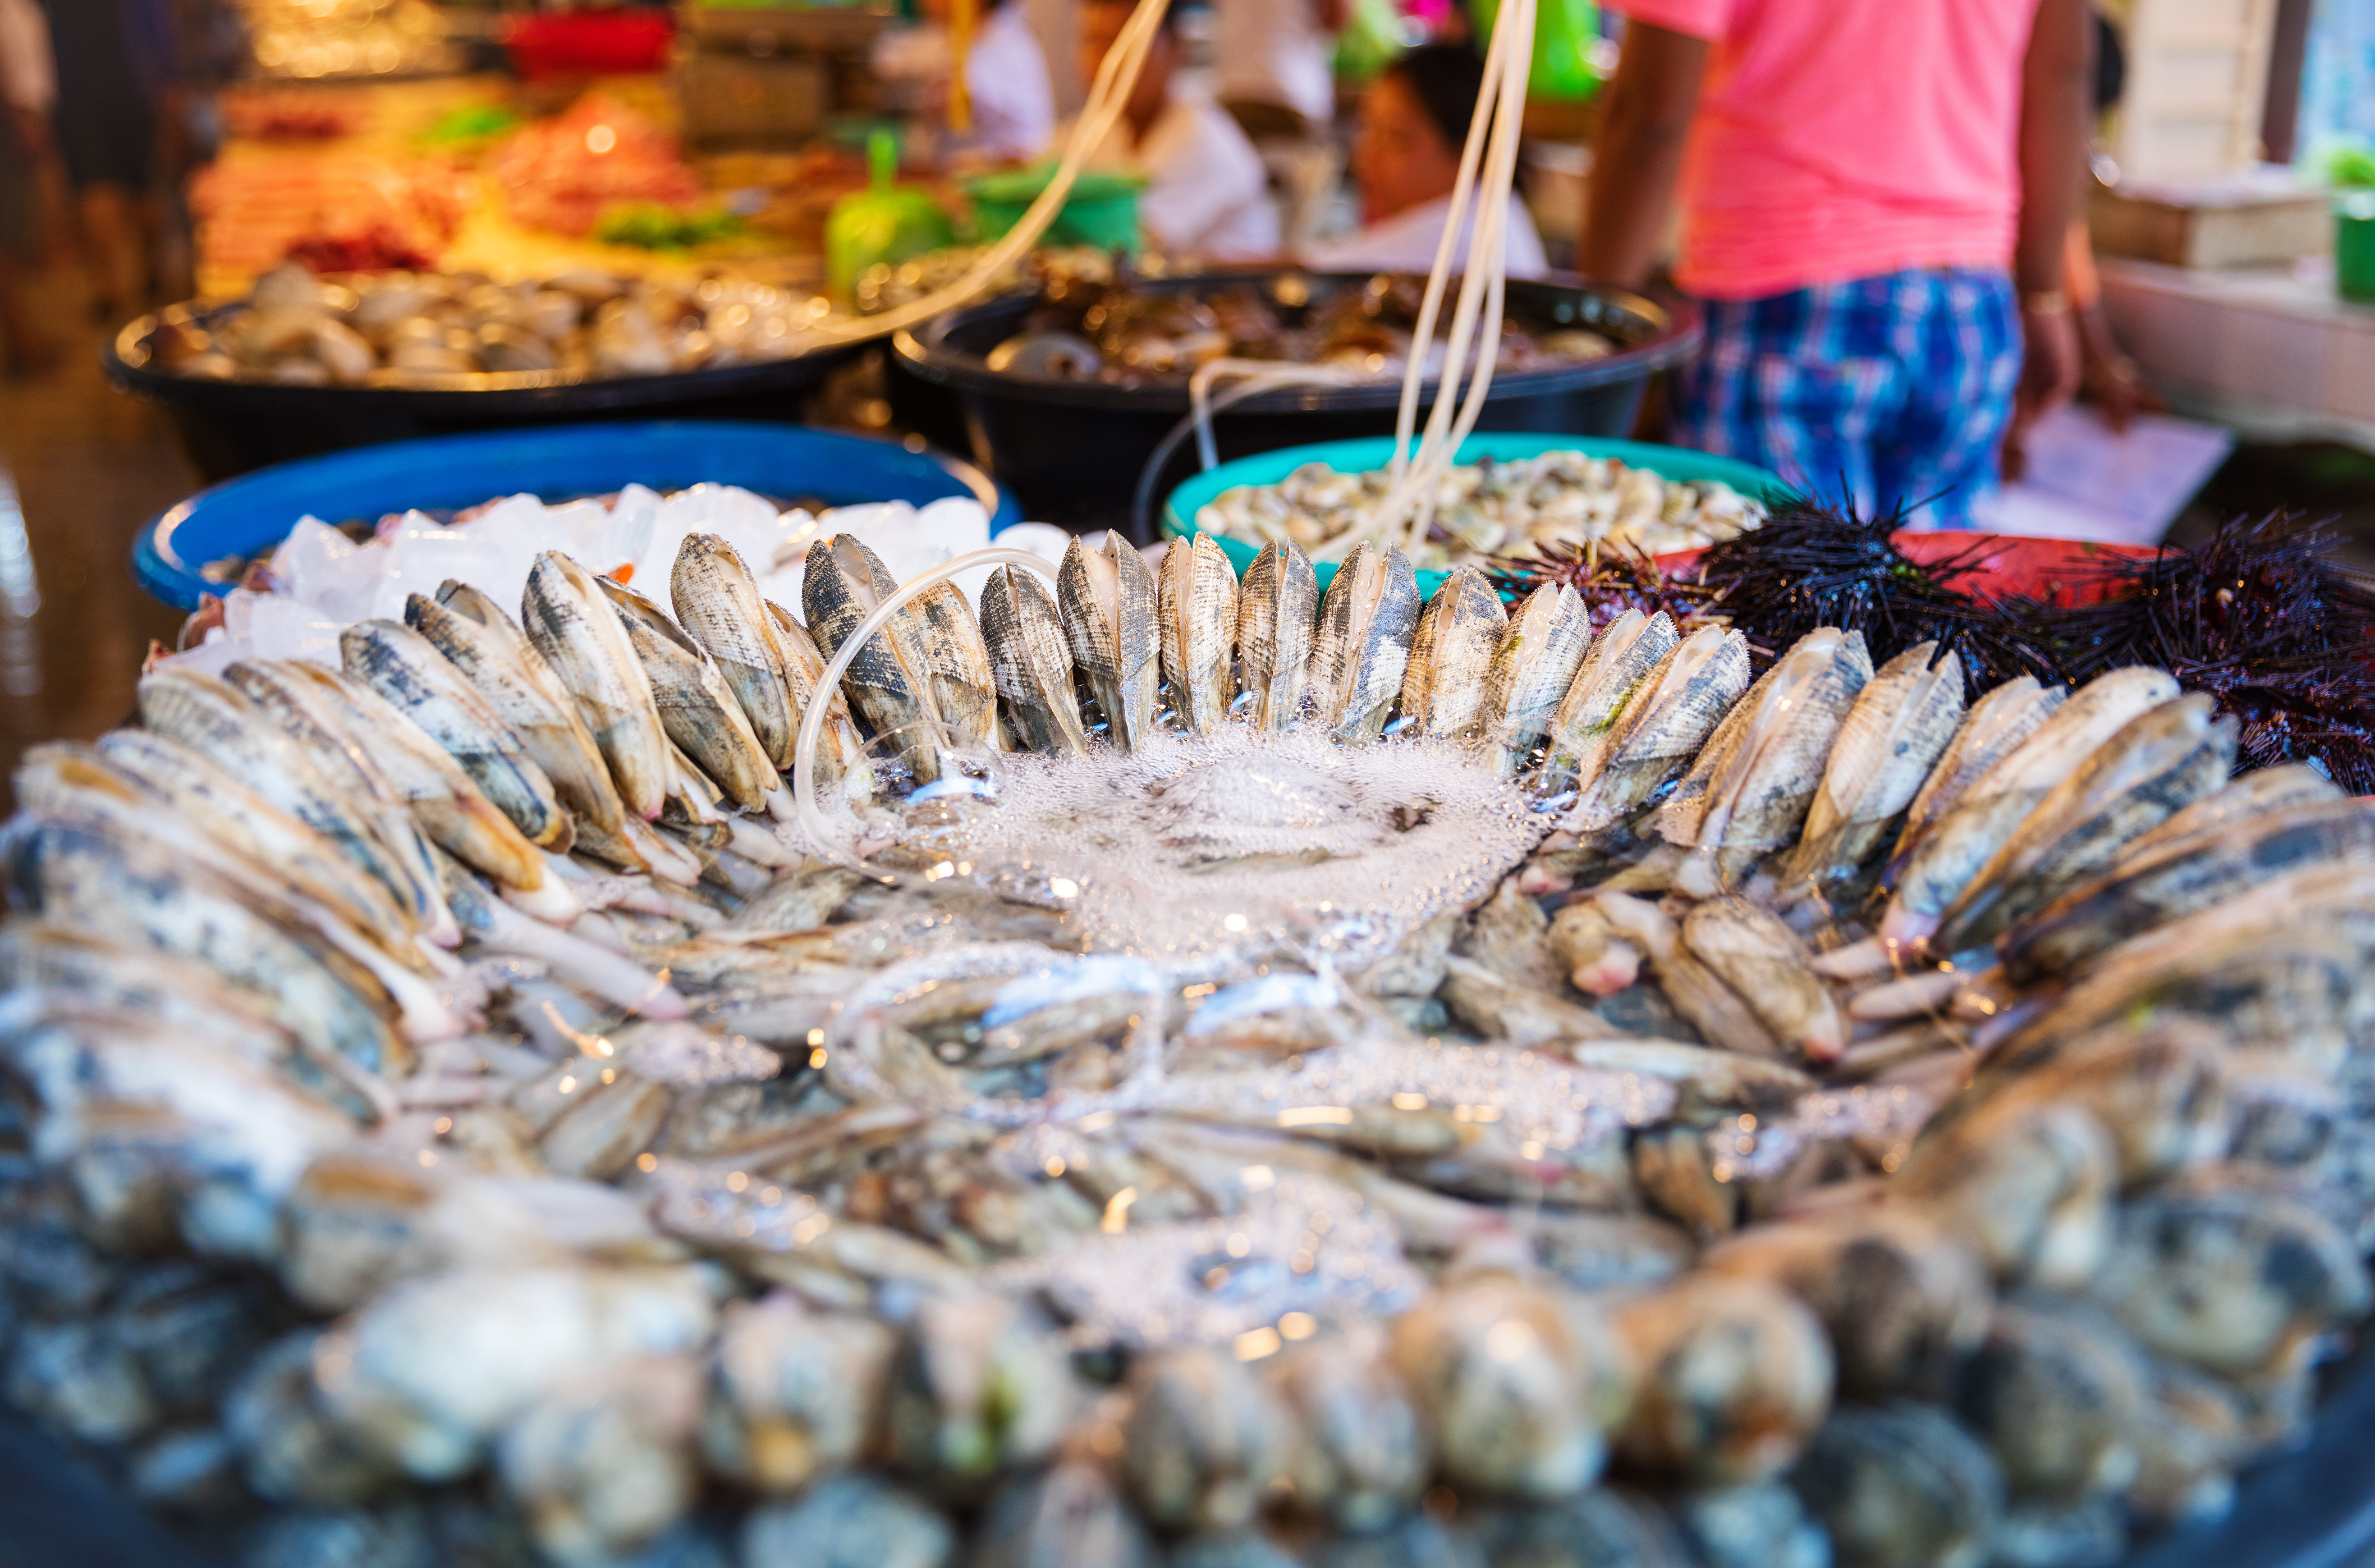 Shellfish for sale at an Asian market